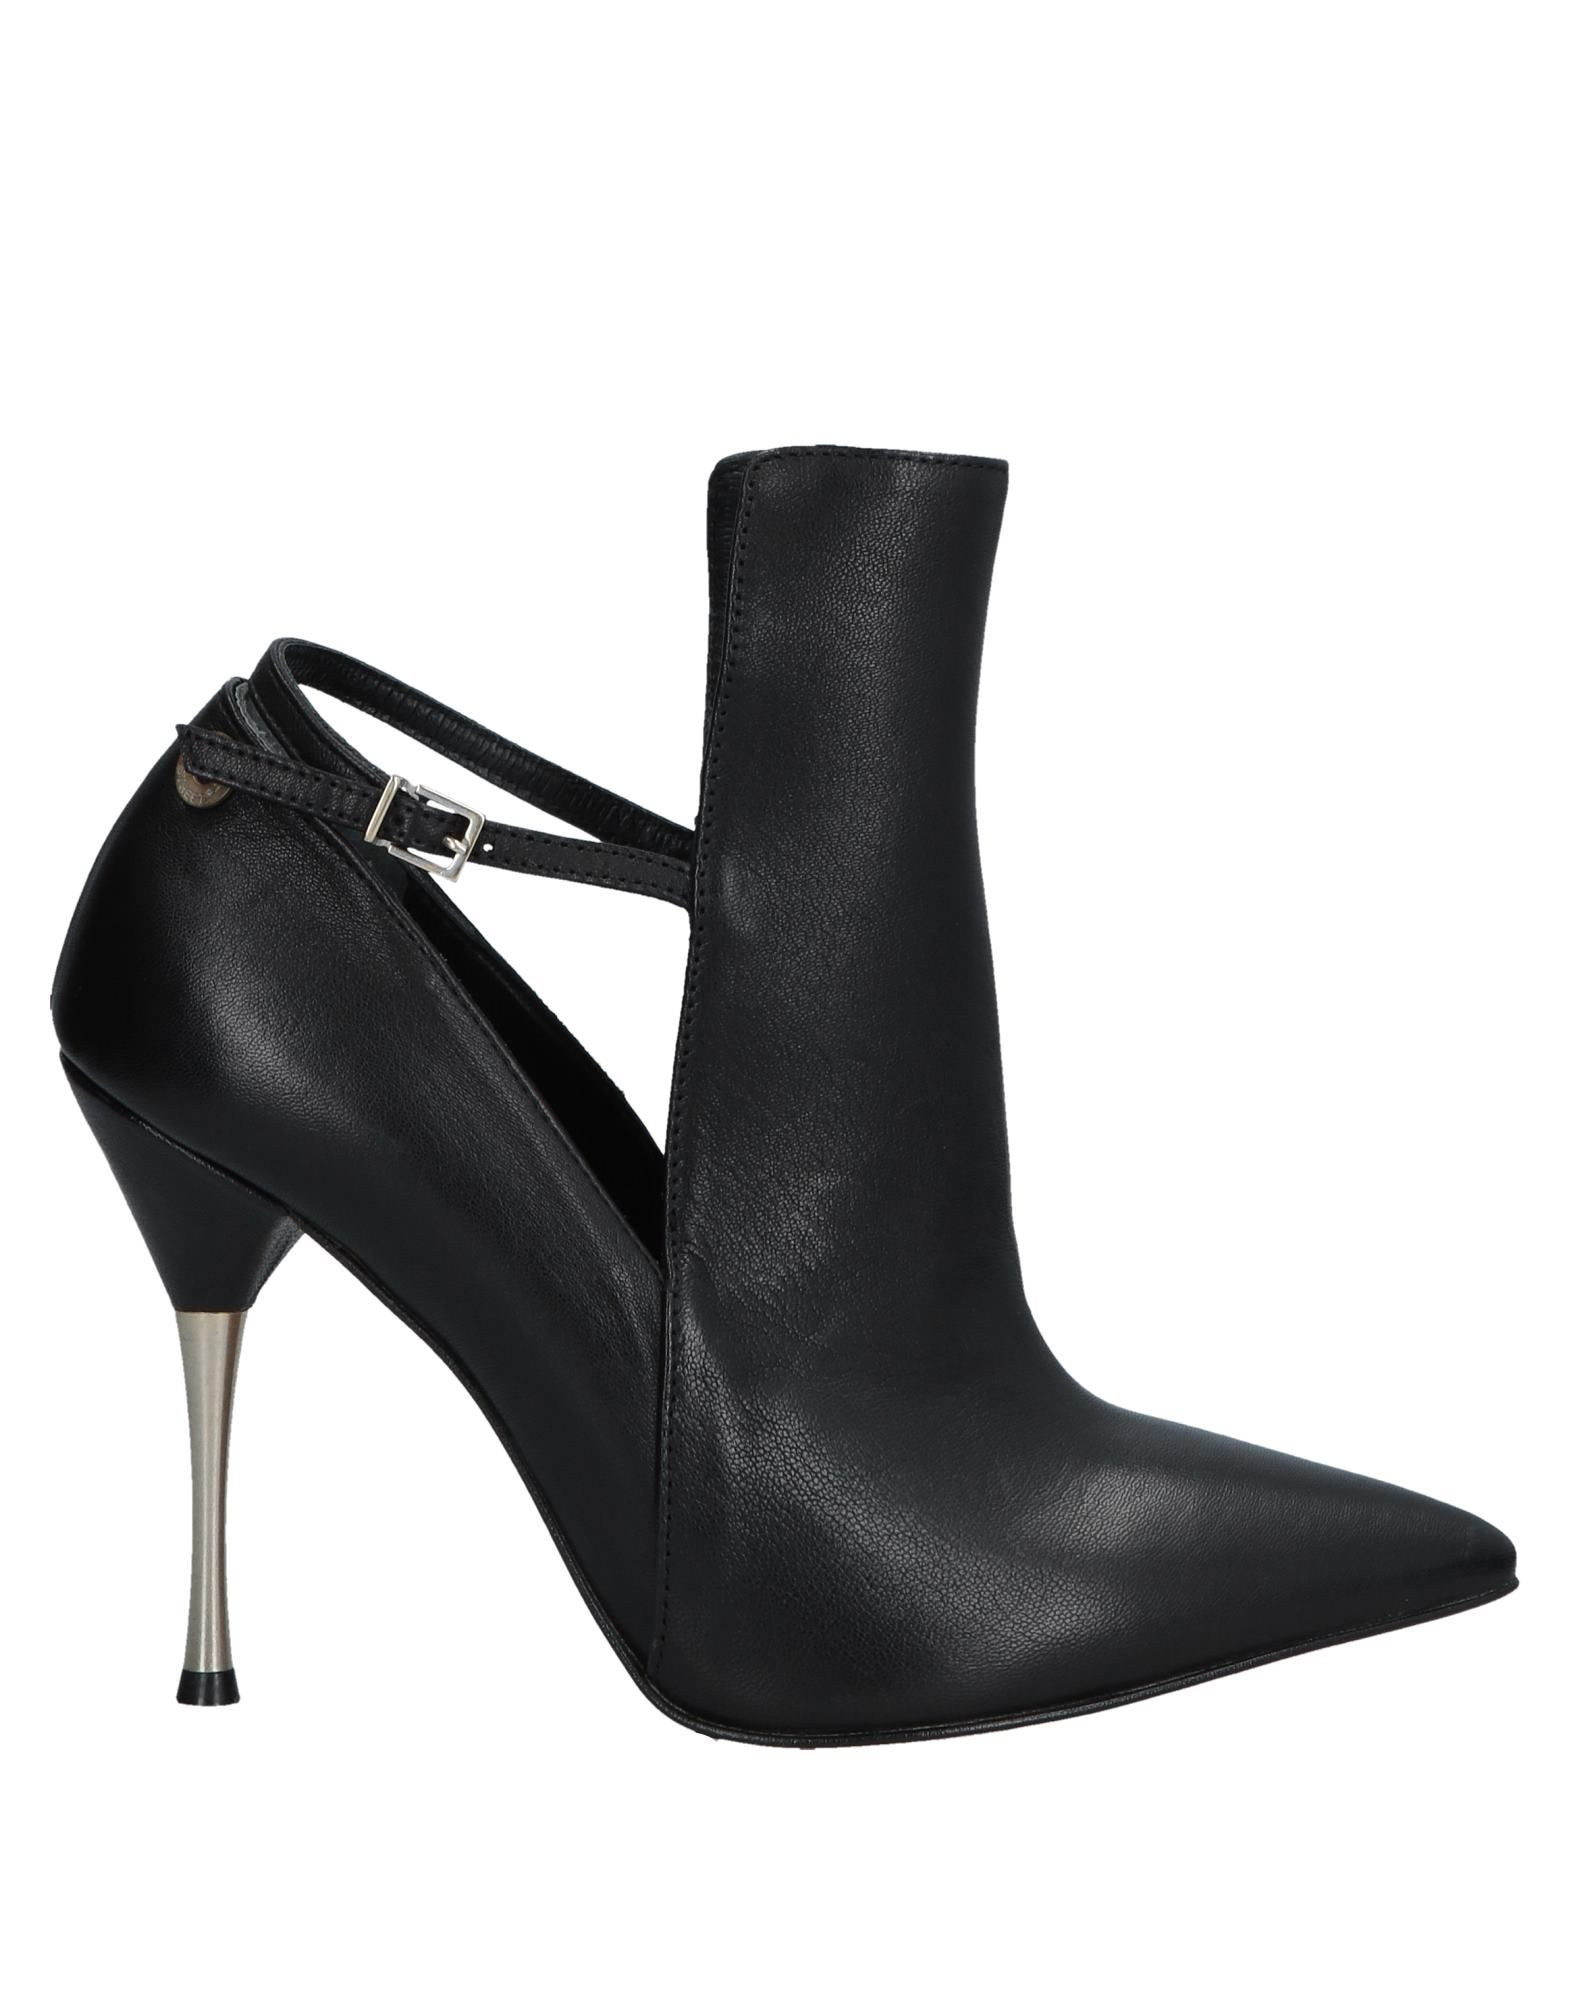 Manila Grace Ankle boot